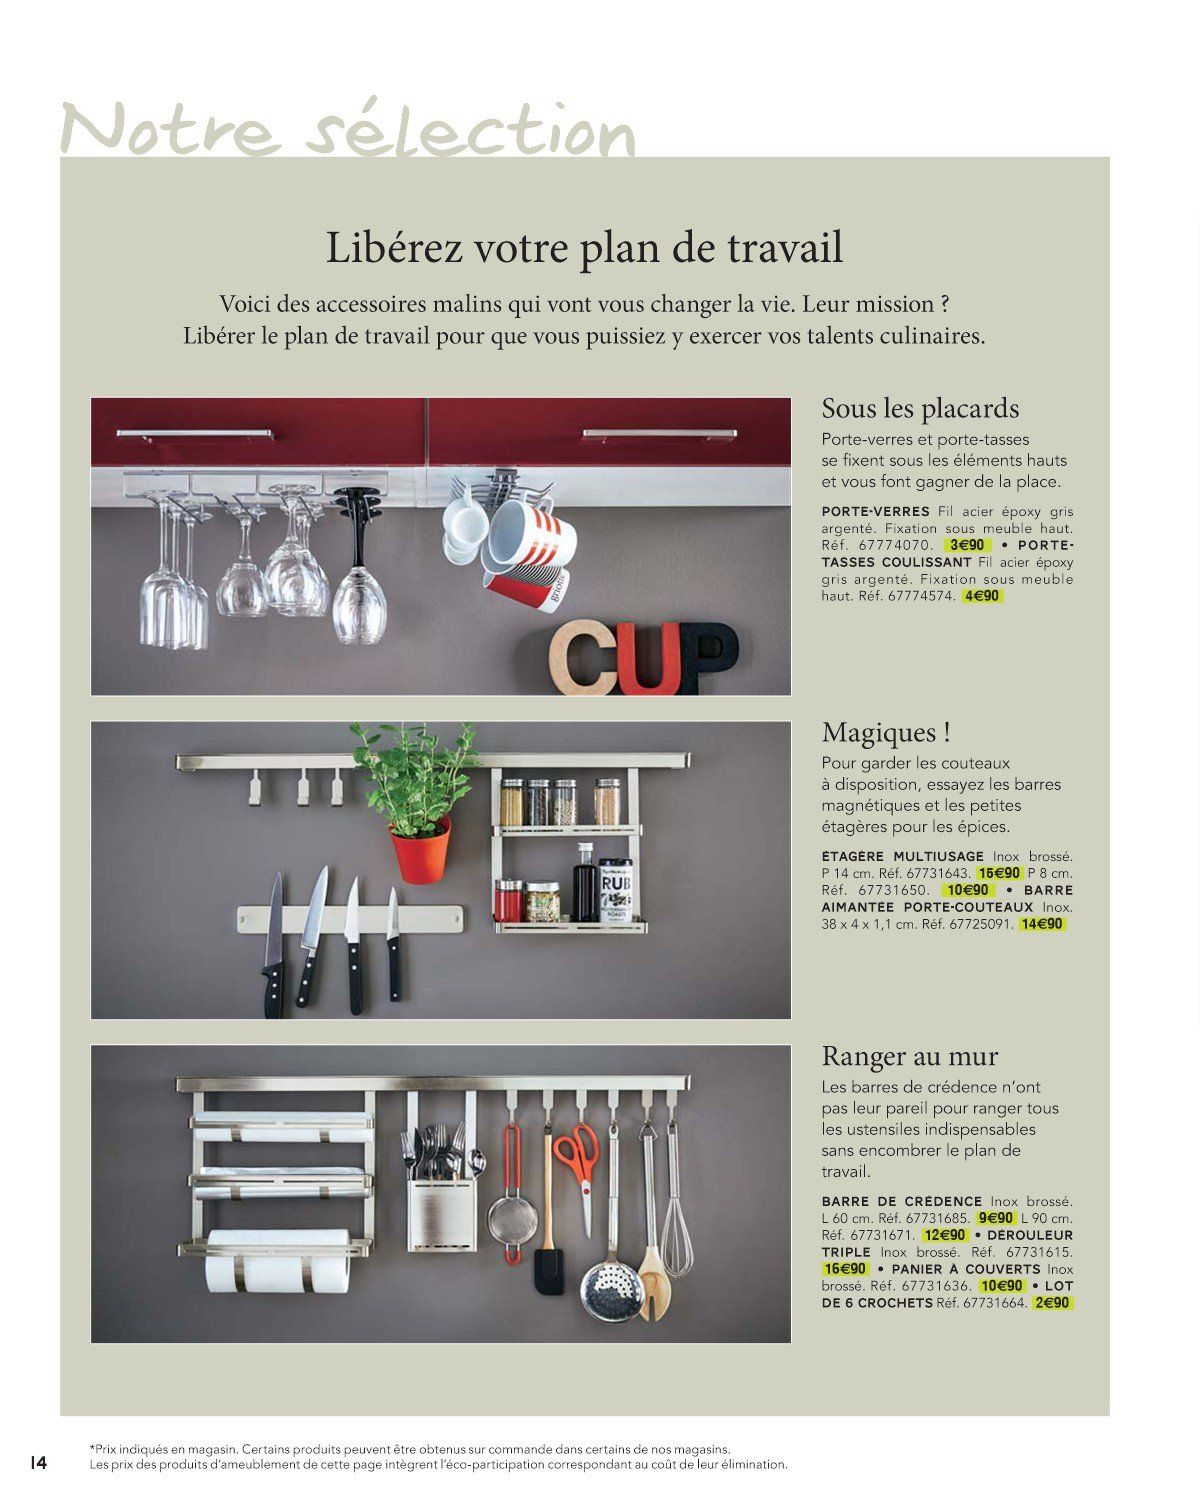 Credence Aimantée Mon Guide Maison N1 Home Sweet Home Pinterest